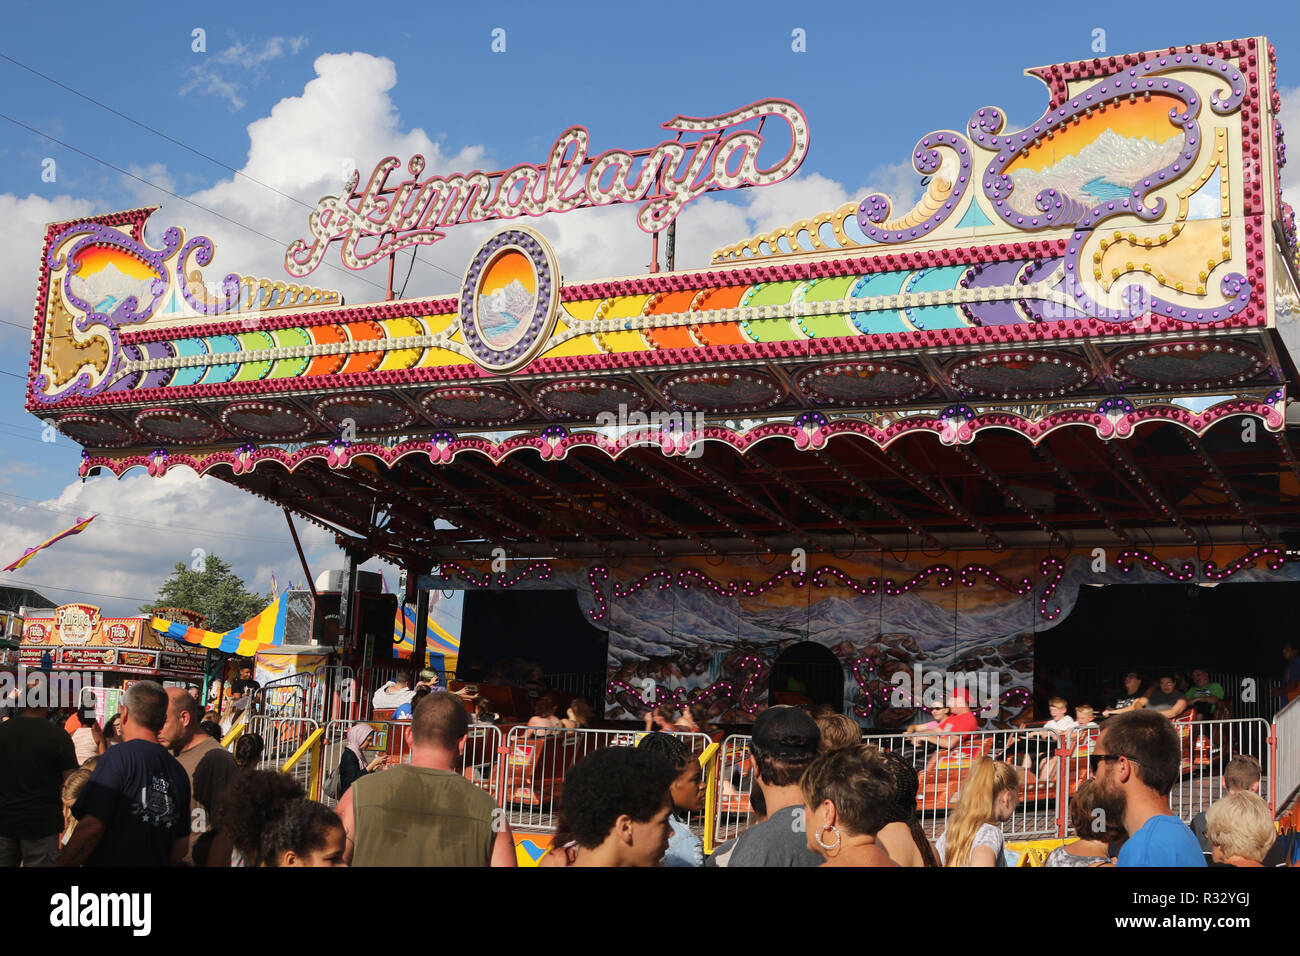 Canfield Swap Meet >> Himalaya Carnival Ride Crowd Of People In The Foreground